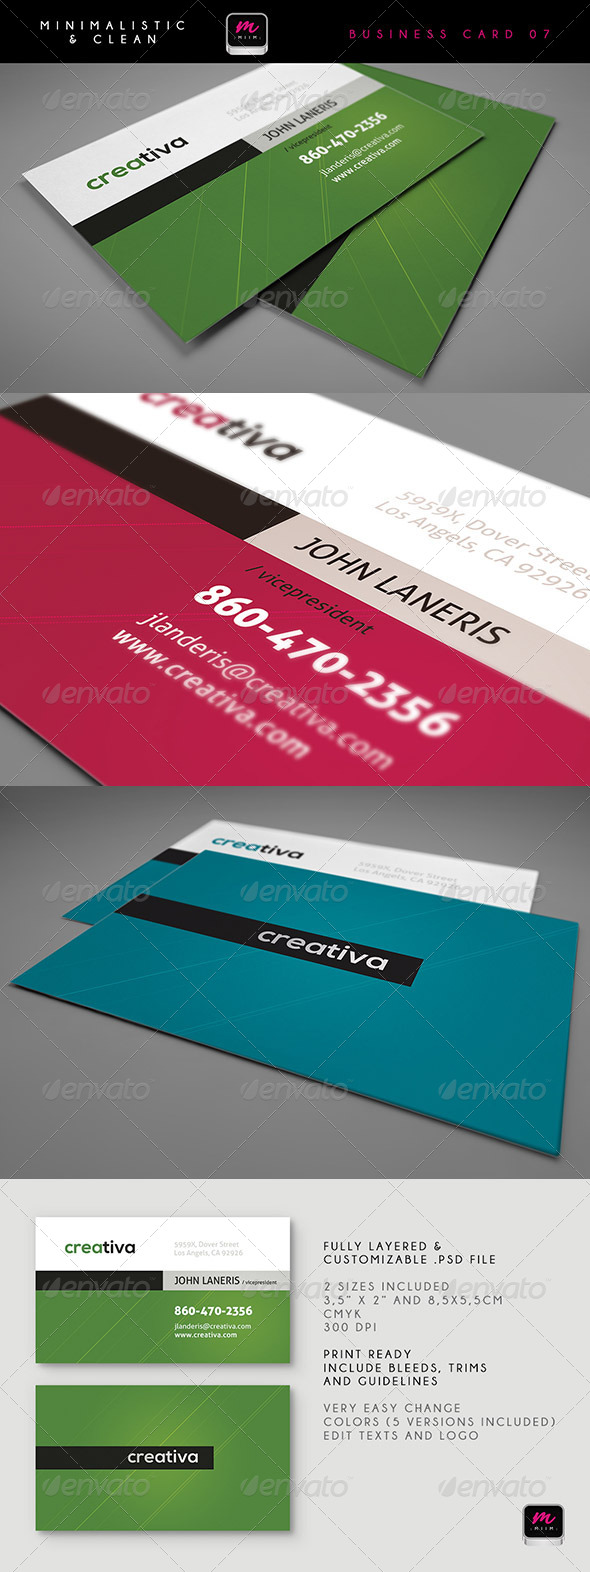 Clean Business Card Template 07 - Corporate Business Cards